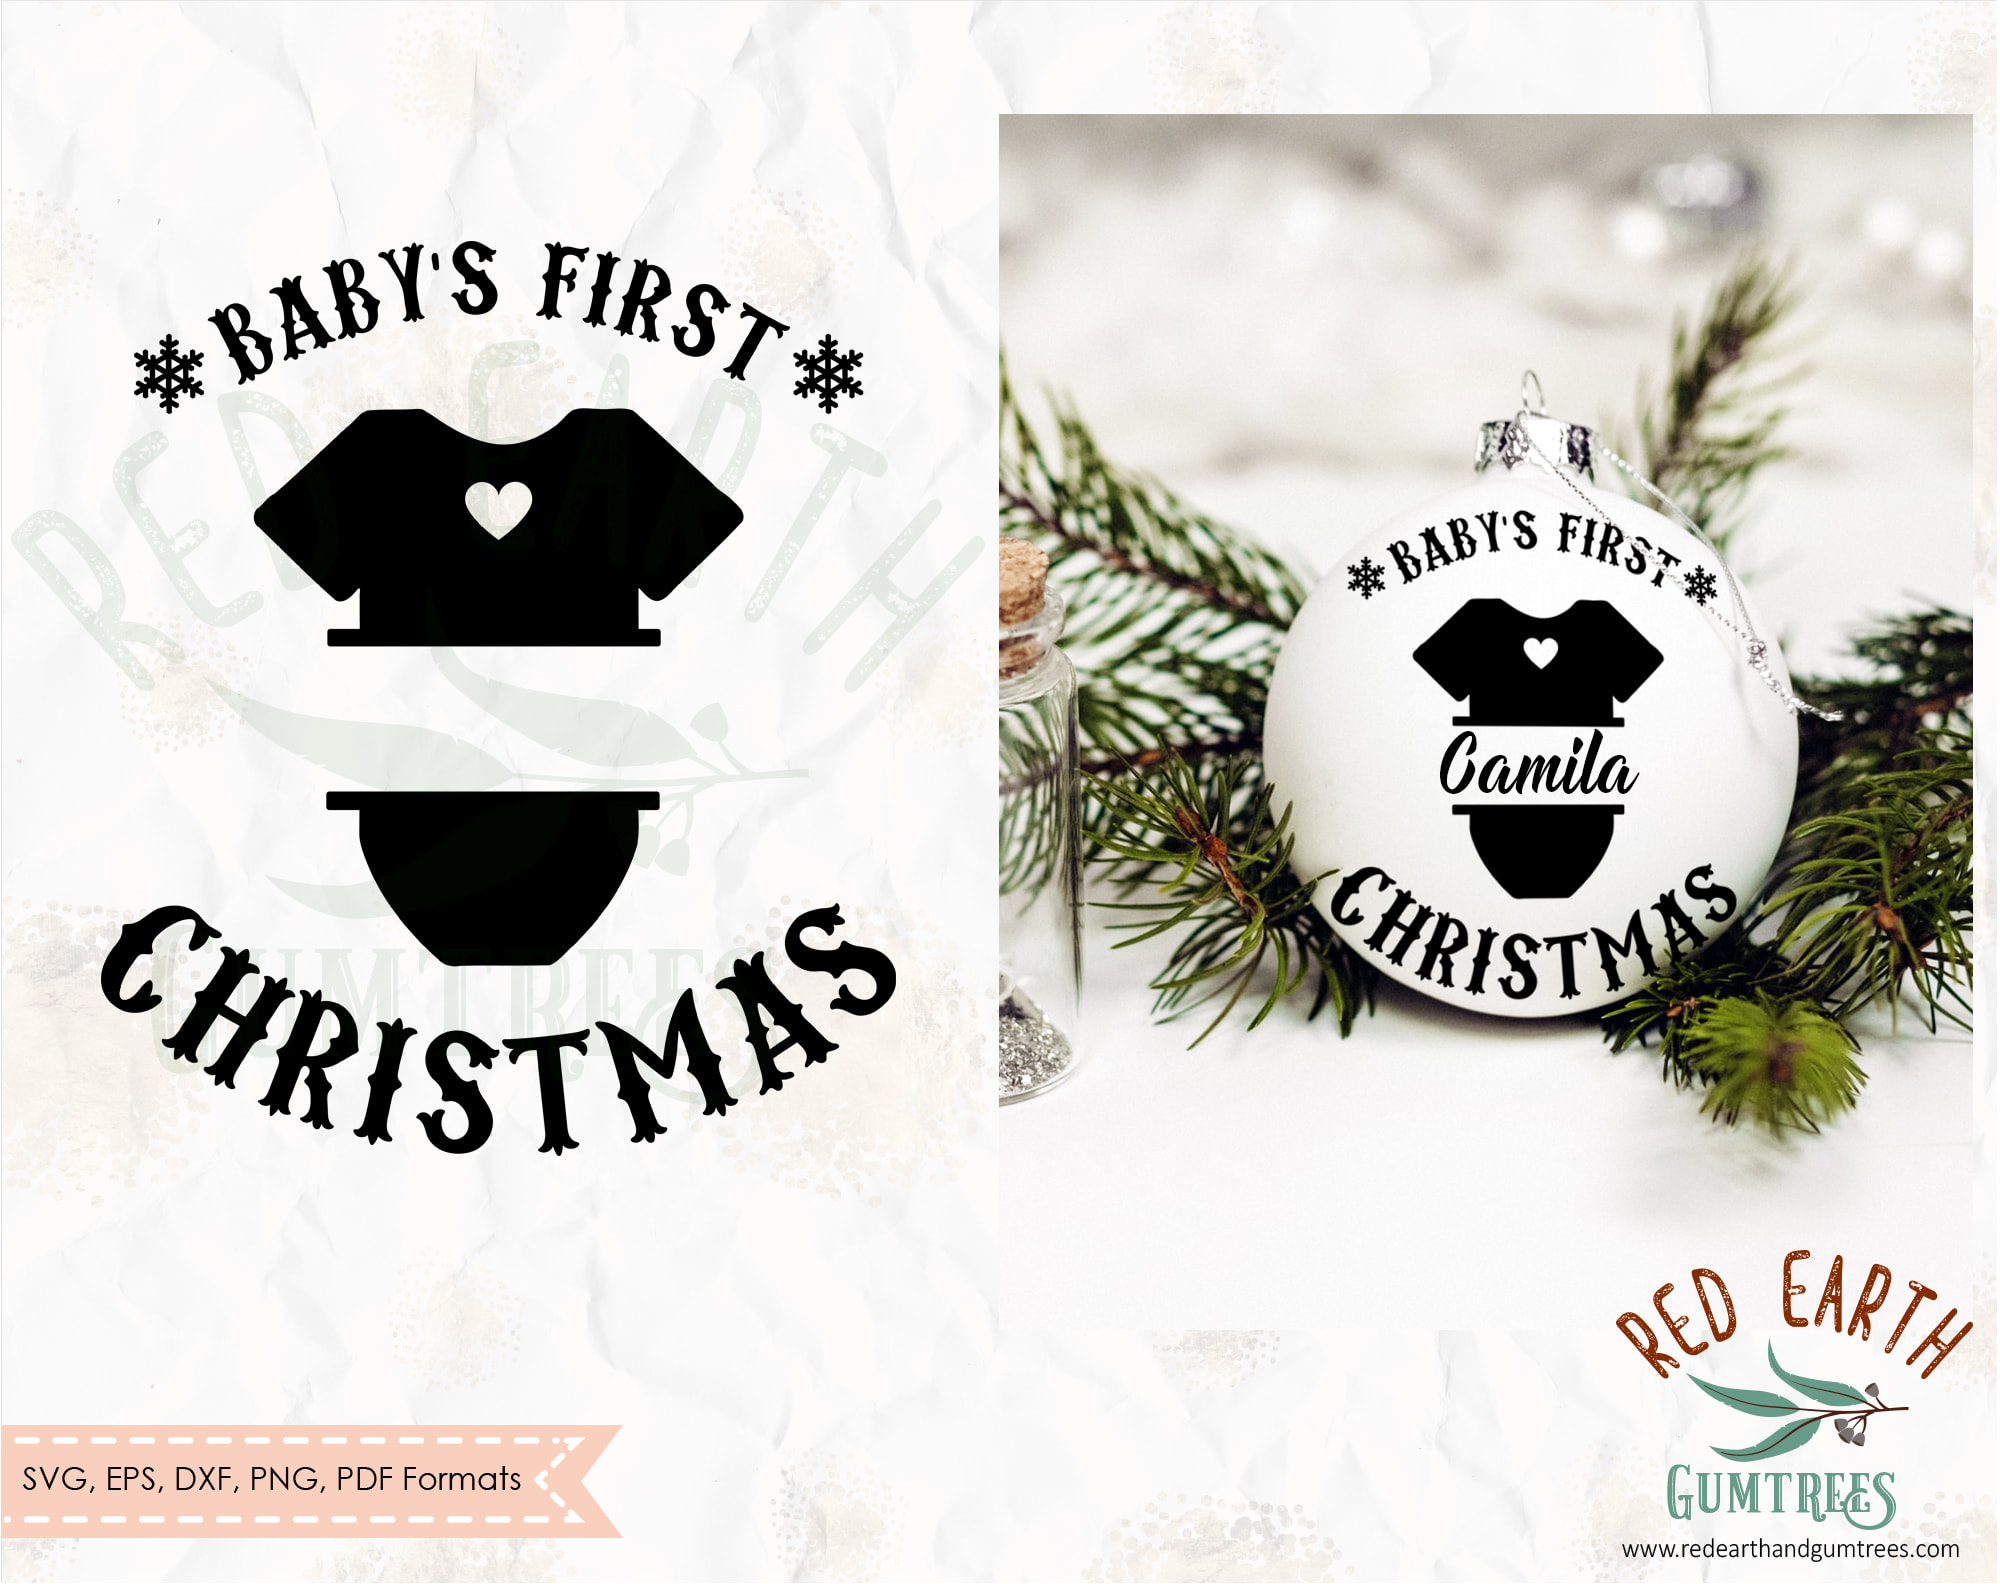 Baby 1st Svg 1st Baby Christmas 1st Baby Christmas Svg Baby Bauble Decal Baby Ornament Svg Bauble Decal Svg Family Bauble Decal Tree Ornament Svg Christmas Tree Svg Babys 1st Decal Babys